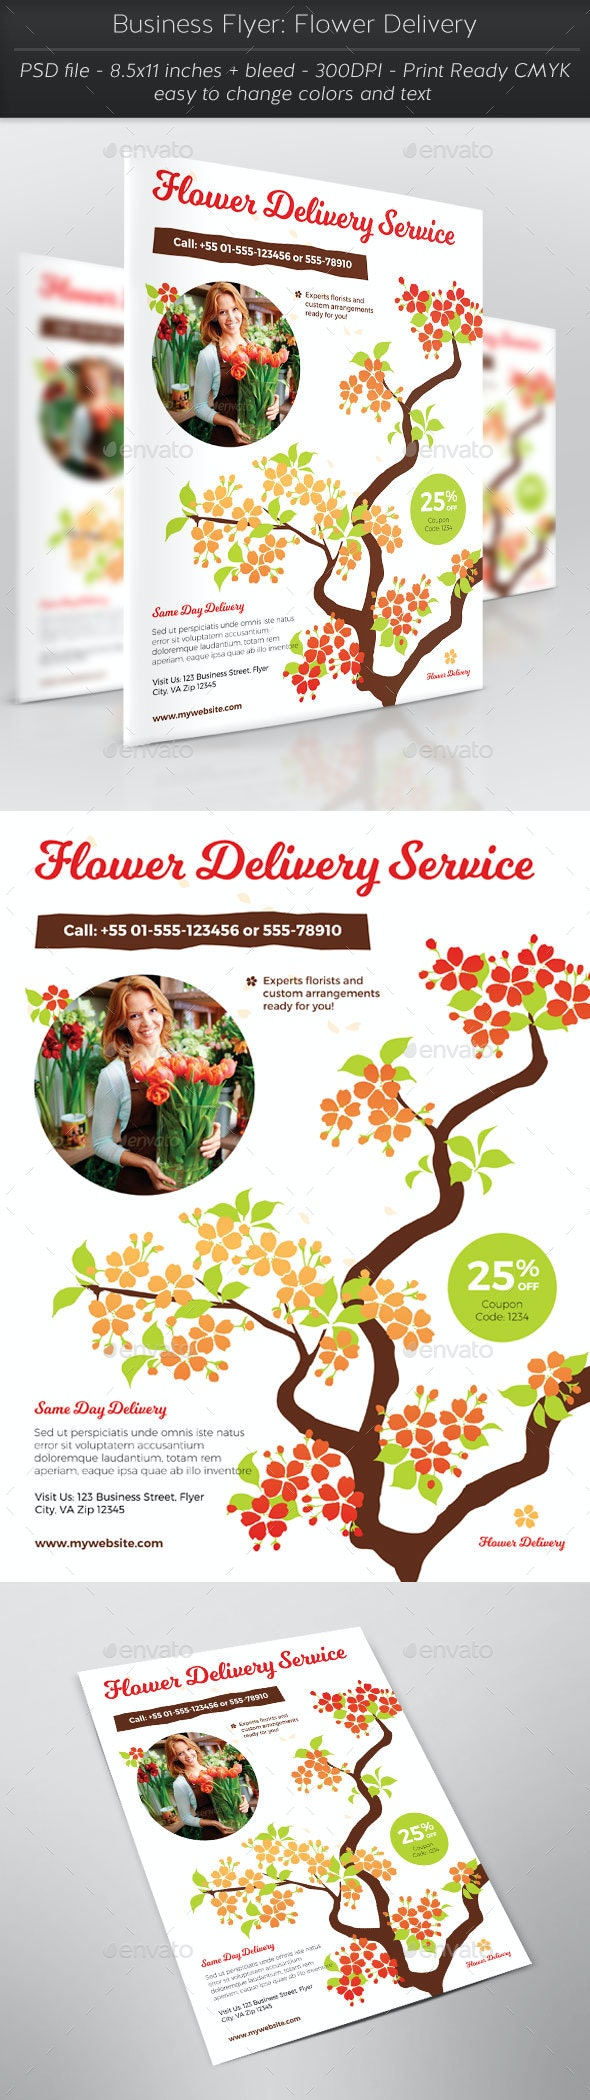 Business Flyer: Flower Delivery - Flyers Print Templates